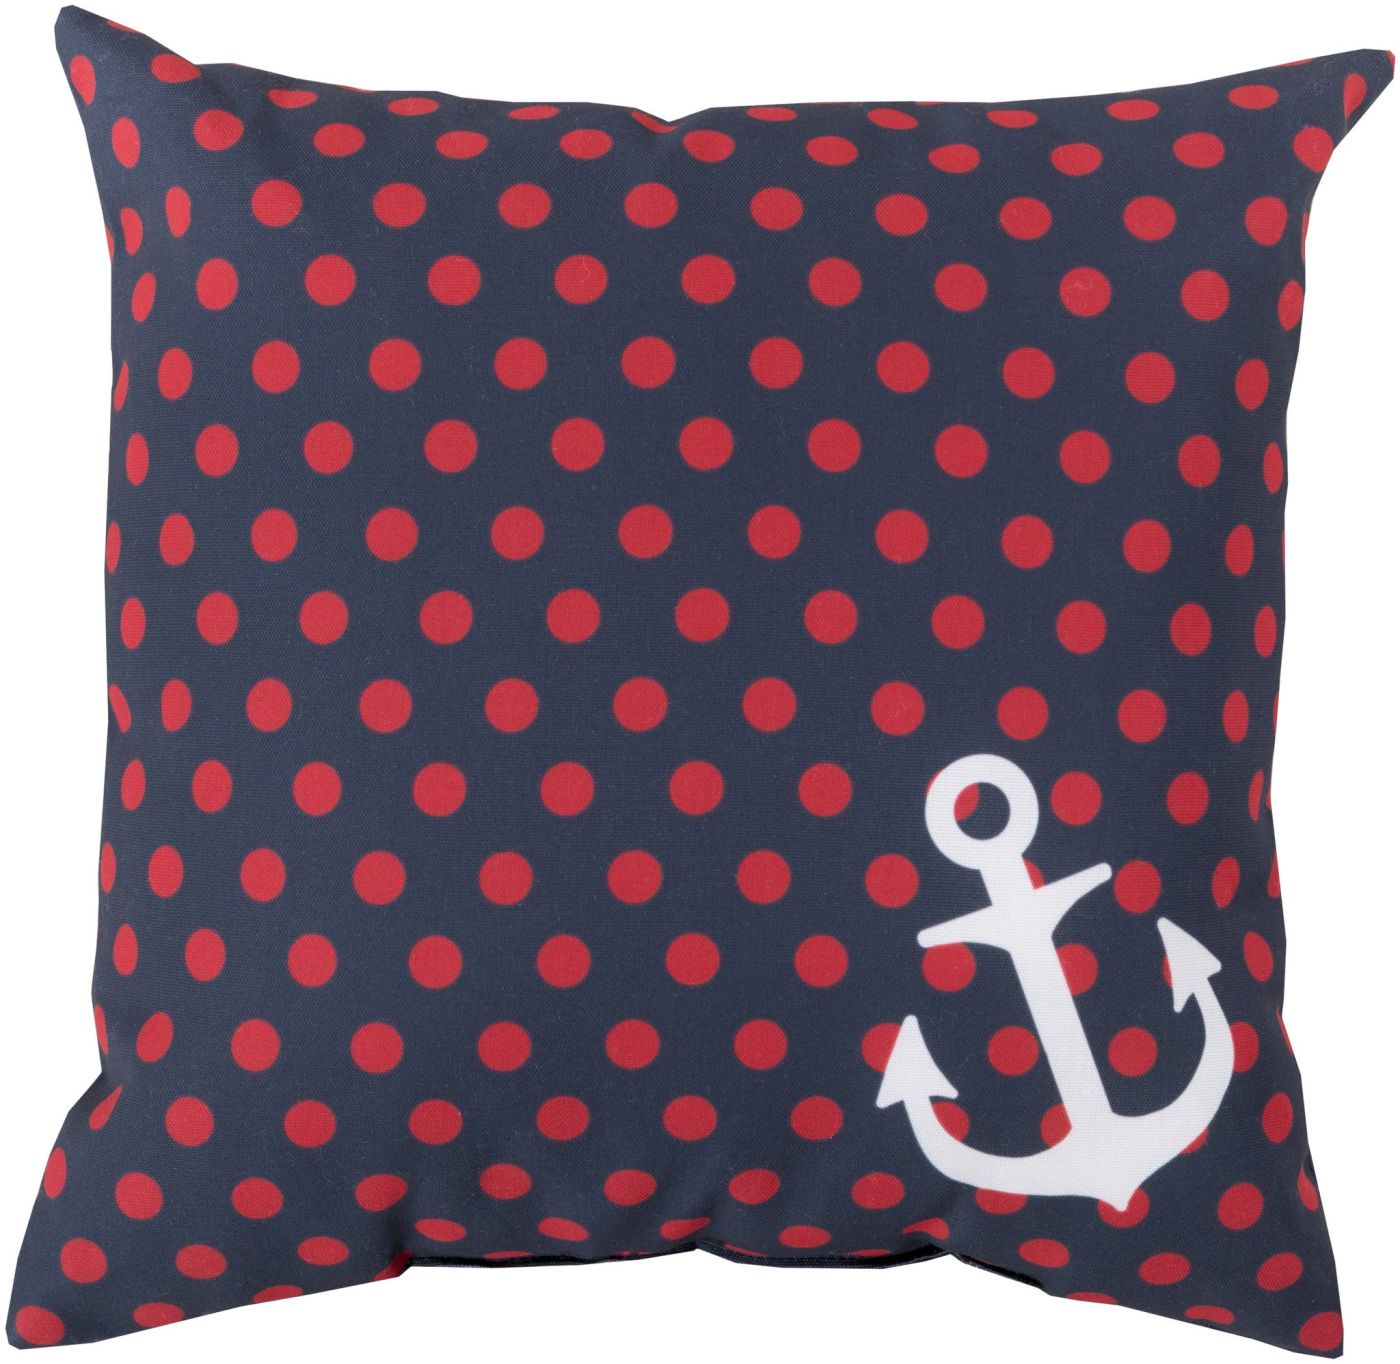 Throw Pillow Warehouse : Surya Rain Throw Pillow Blue, Red RG125-1818. Only $37.80 at Contemporary Furniture Warehouse.